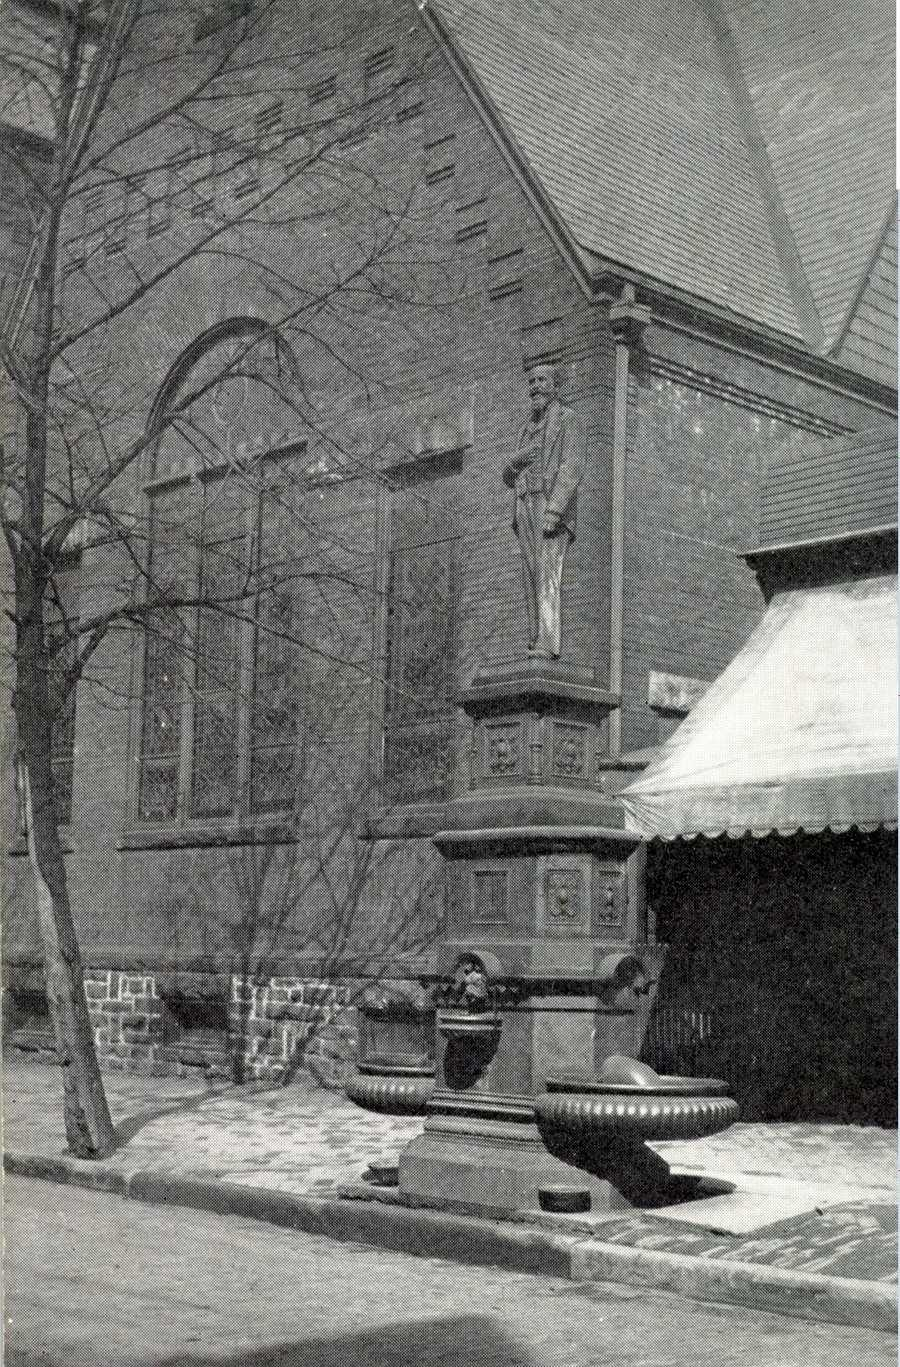 The John F. Wolf Memorial Fountain on Main Street in Irwin was dedicated in January 1901.  The fountain was removed years later.